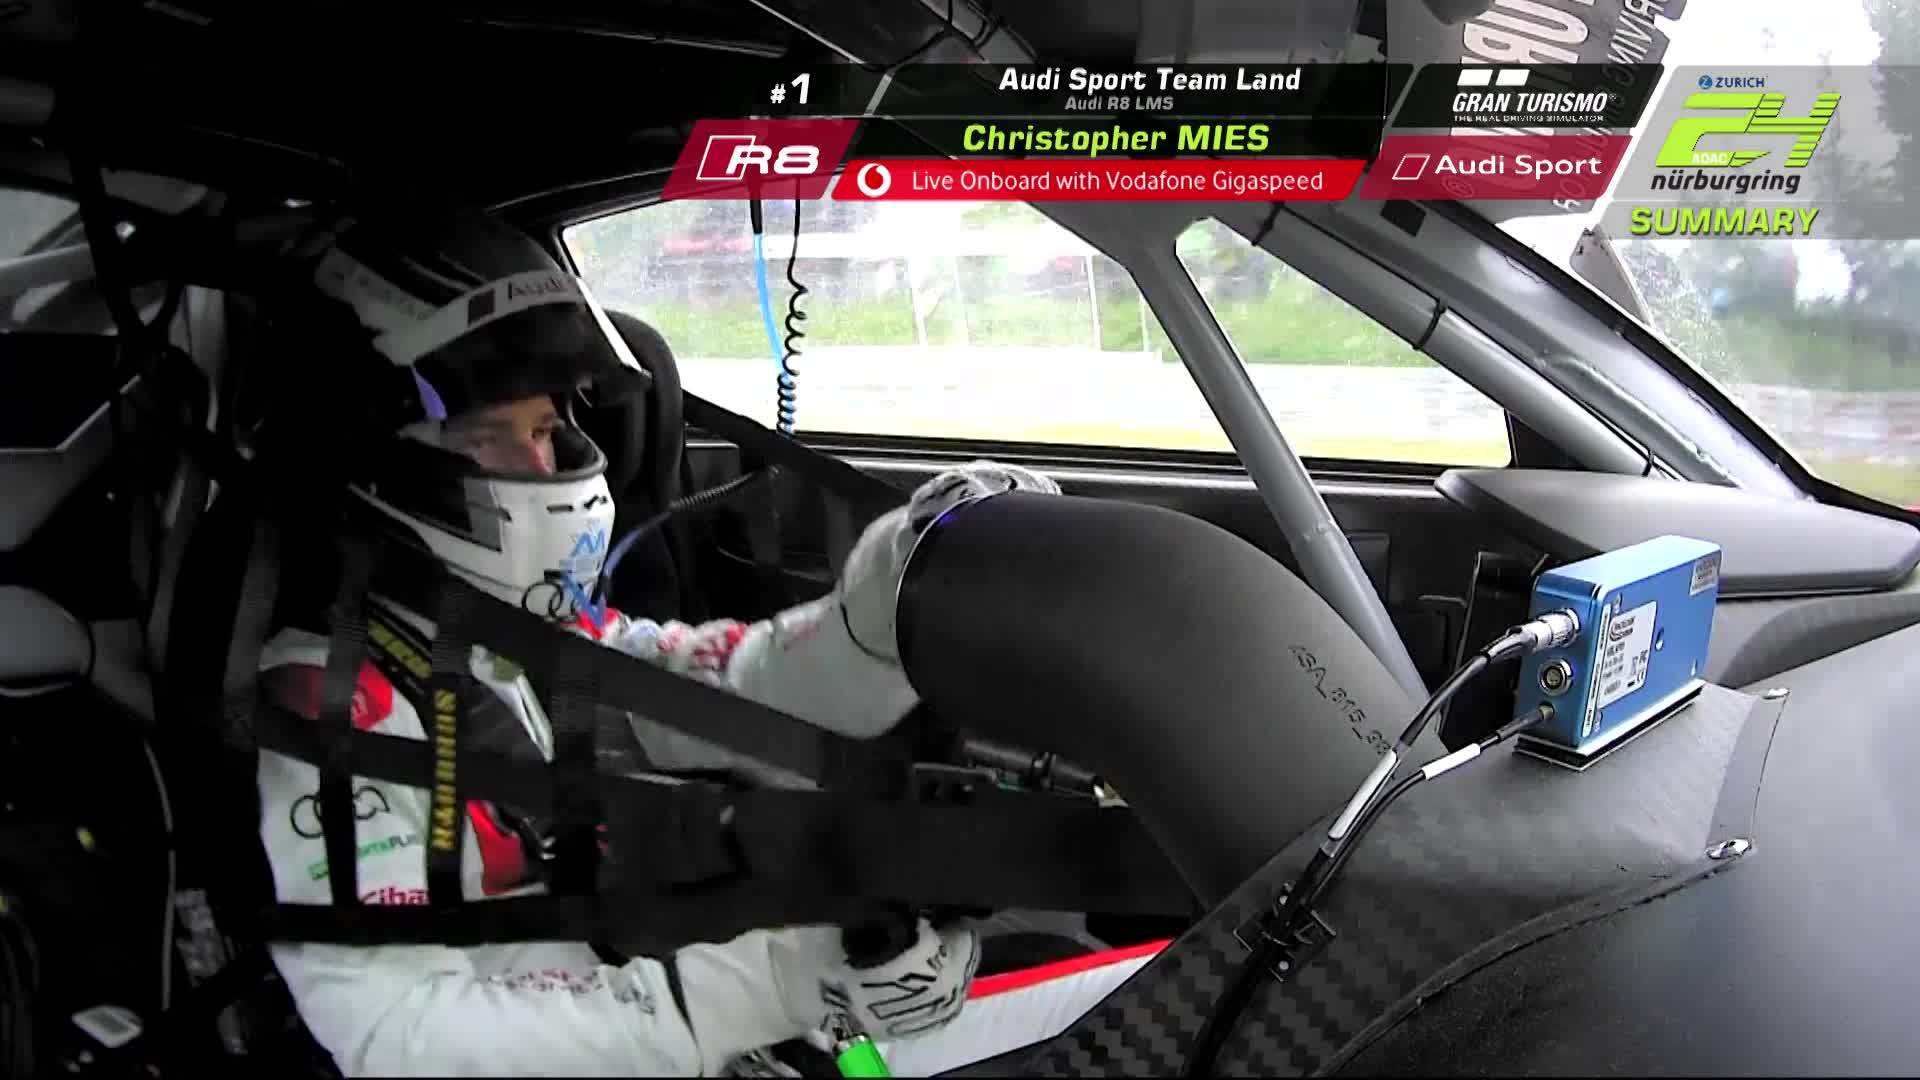 24h Nürburgring 2018 – The last four hours of racing